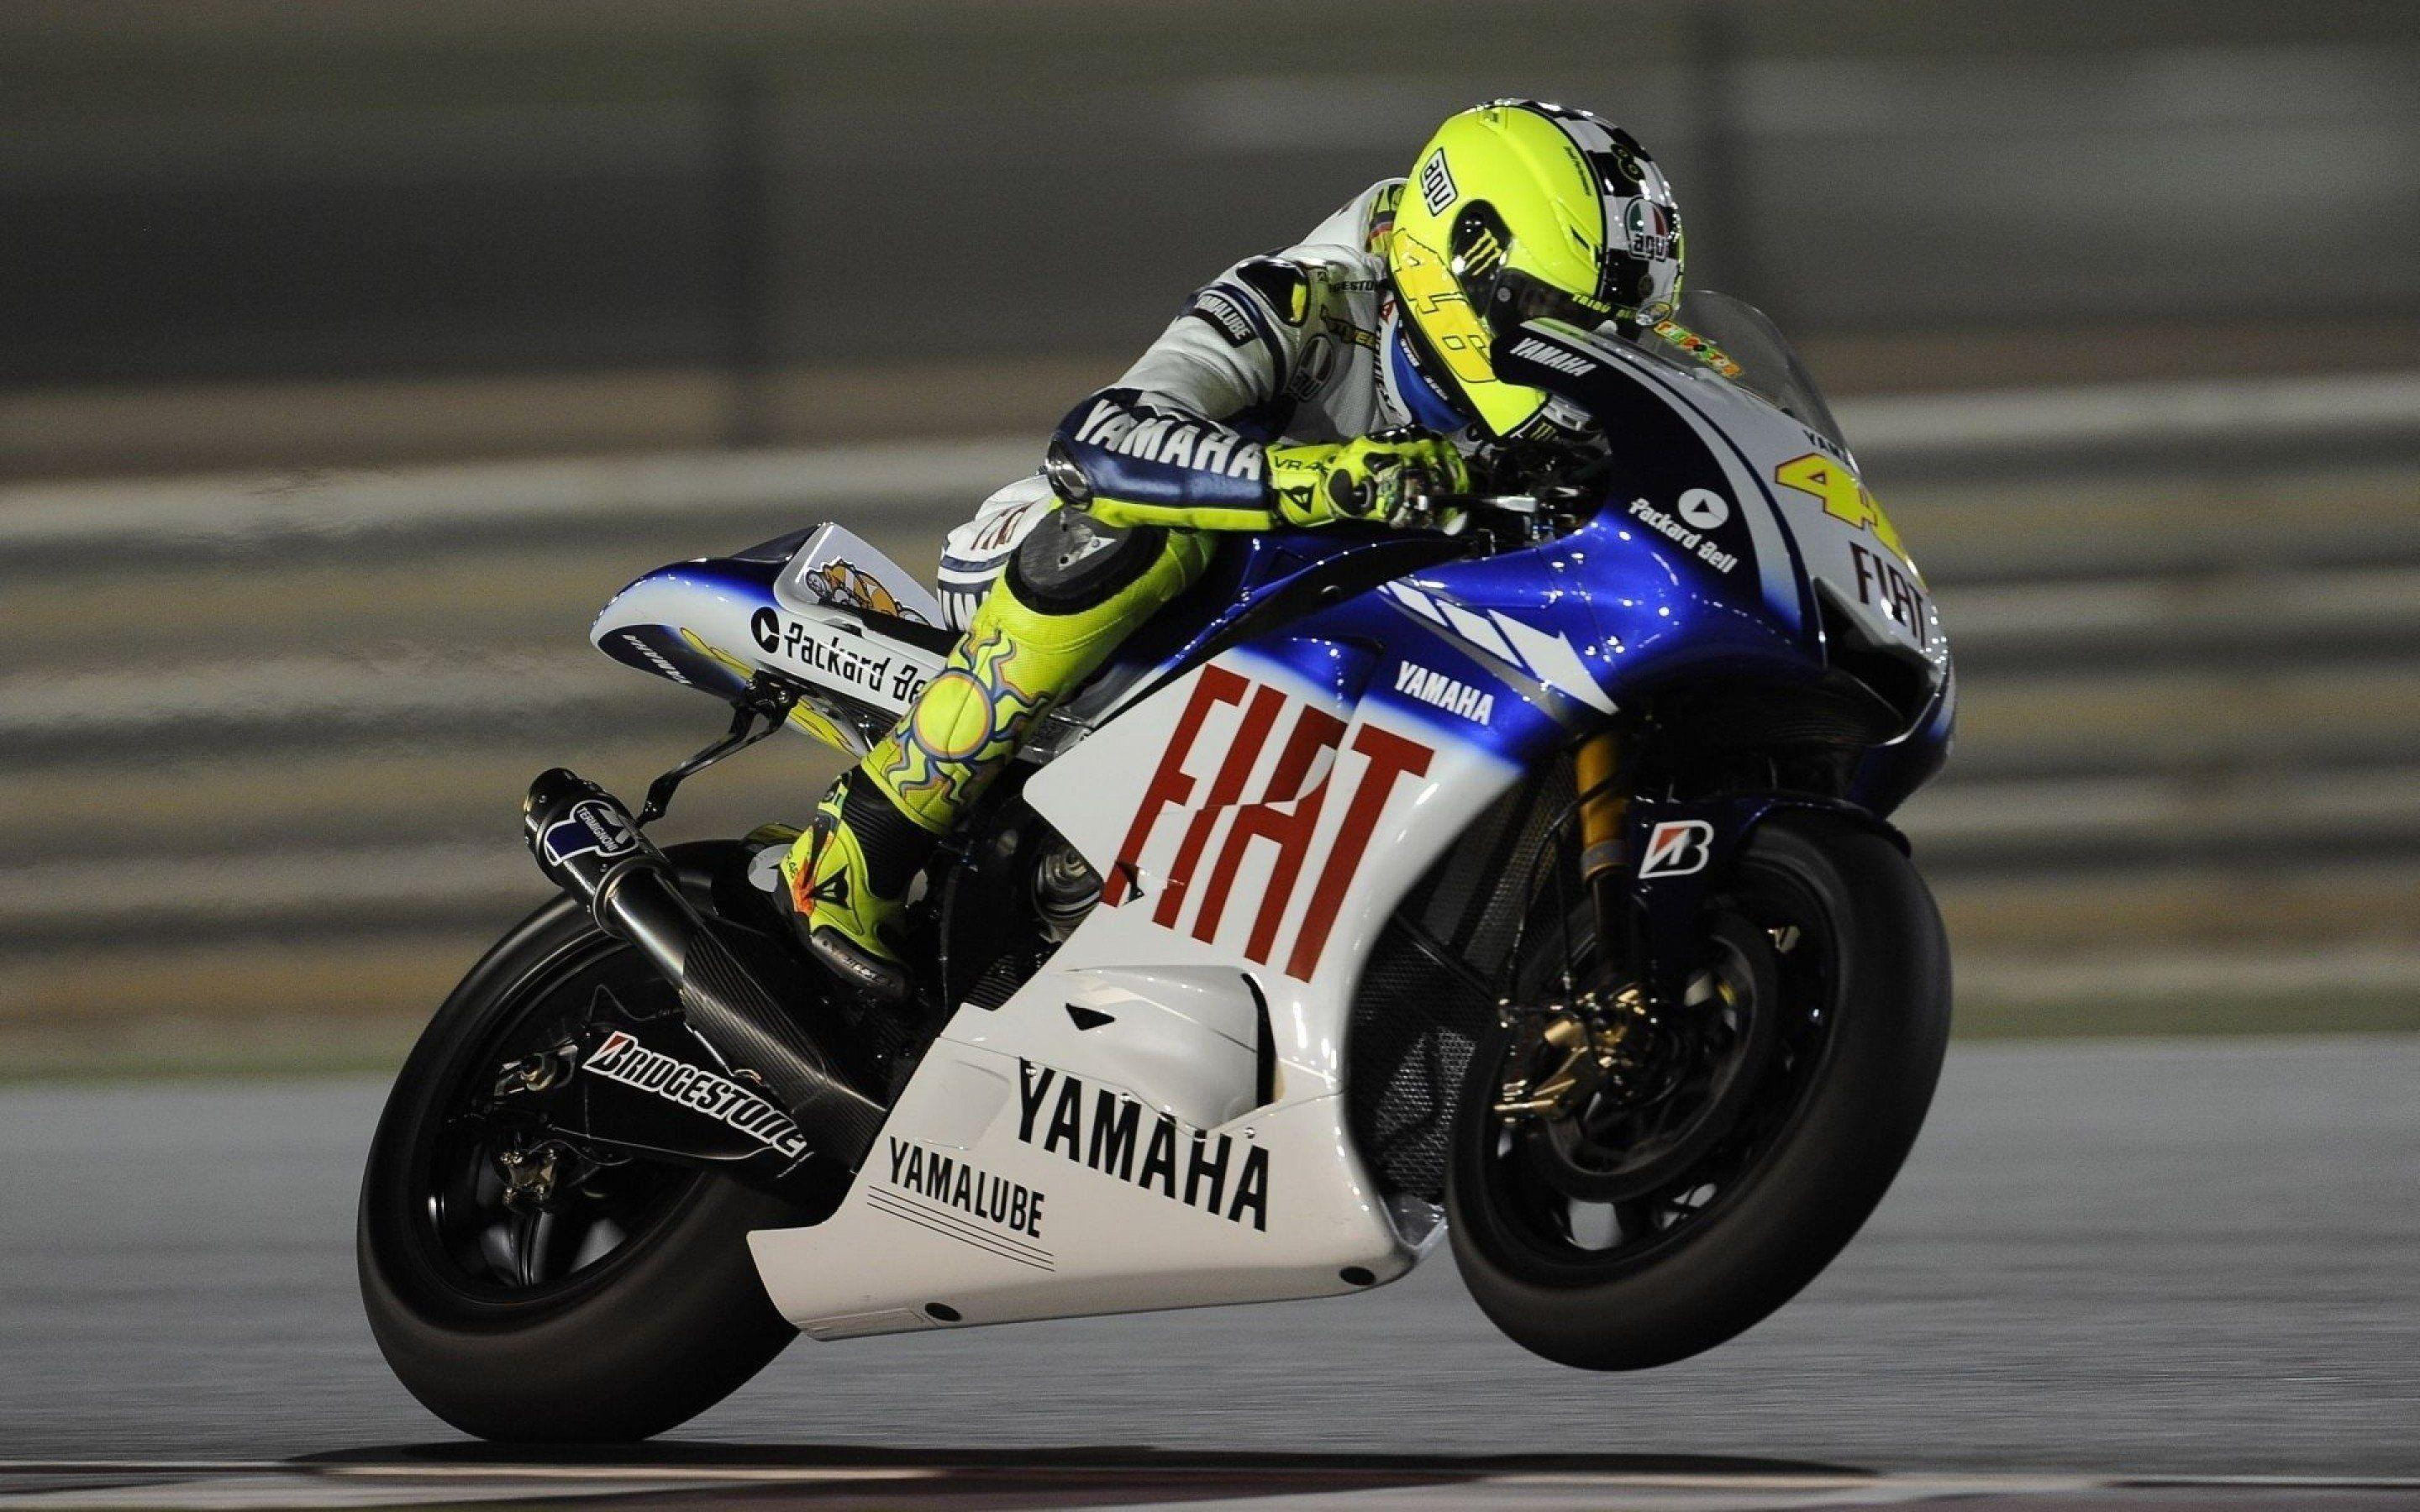 Valentino Rossi Wallpapers Hd Wallpapers